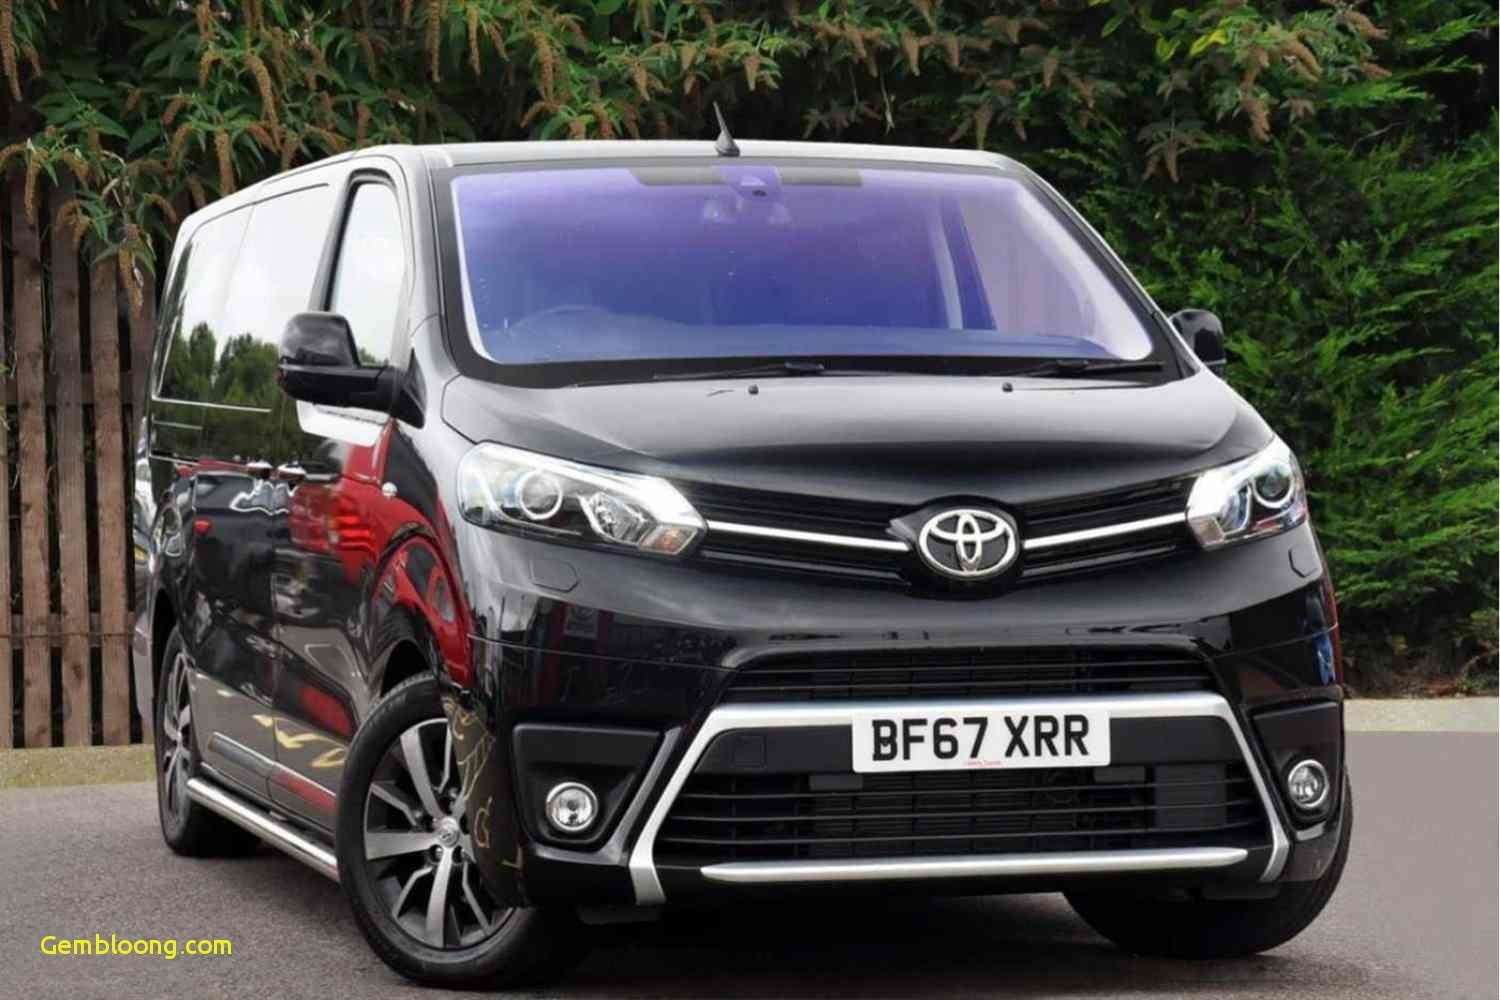 Toyota Auris Modified Fresh toyota Avensis 2019 2019 toyota Yaris Sedan Modified 2019 toyota-1069 Of Unique toyota Auris Modified – 1069